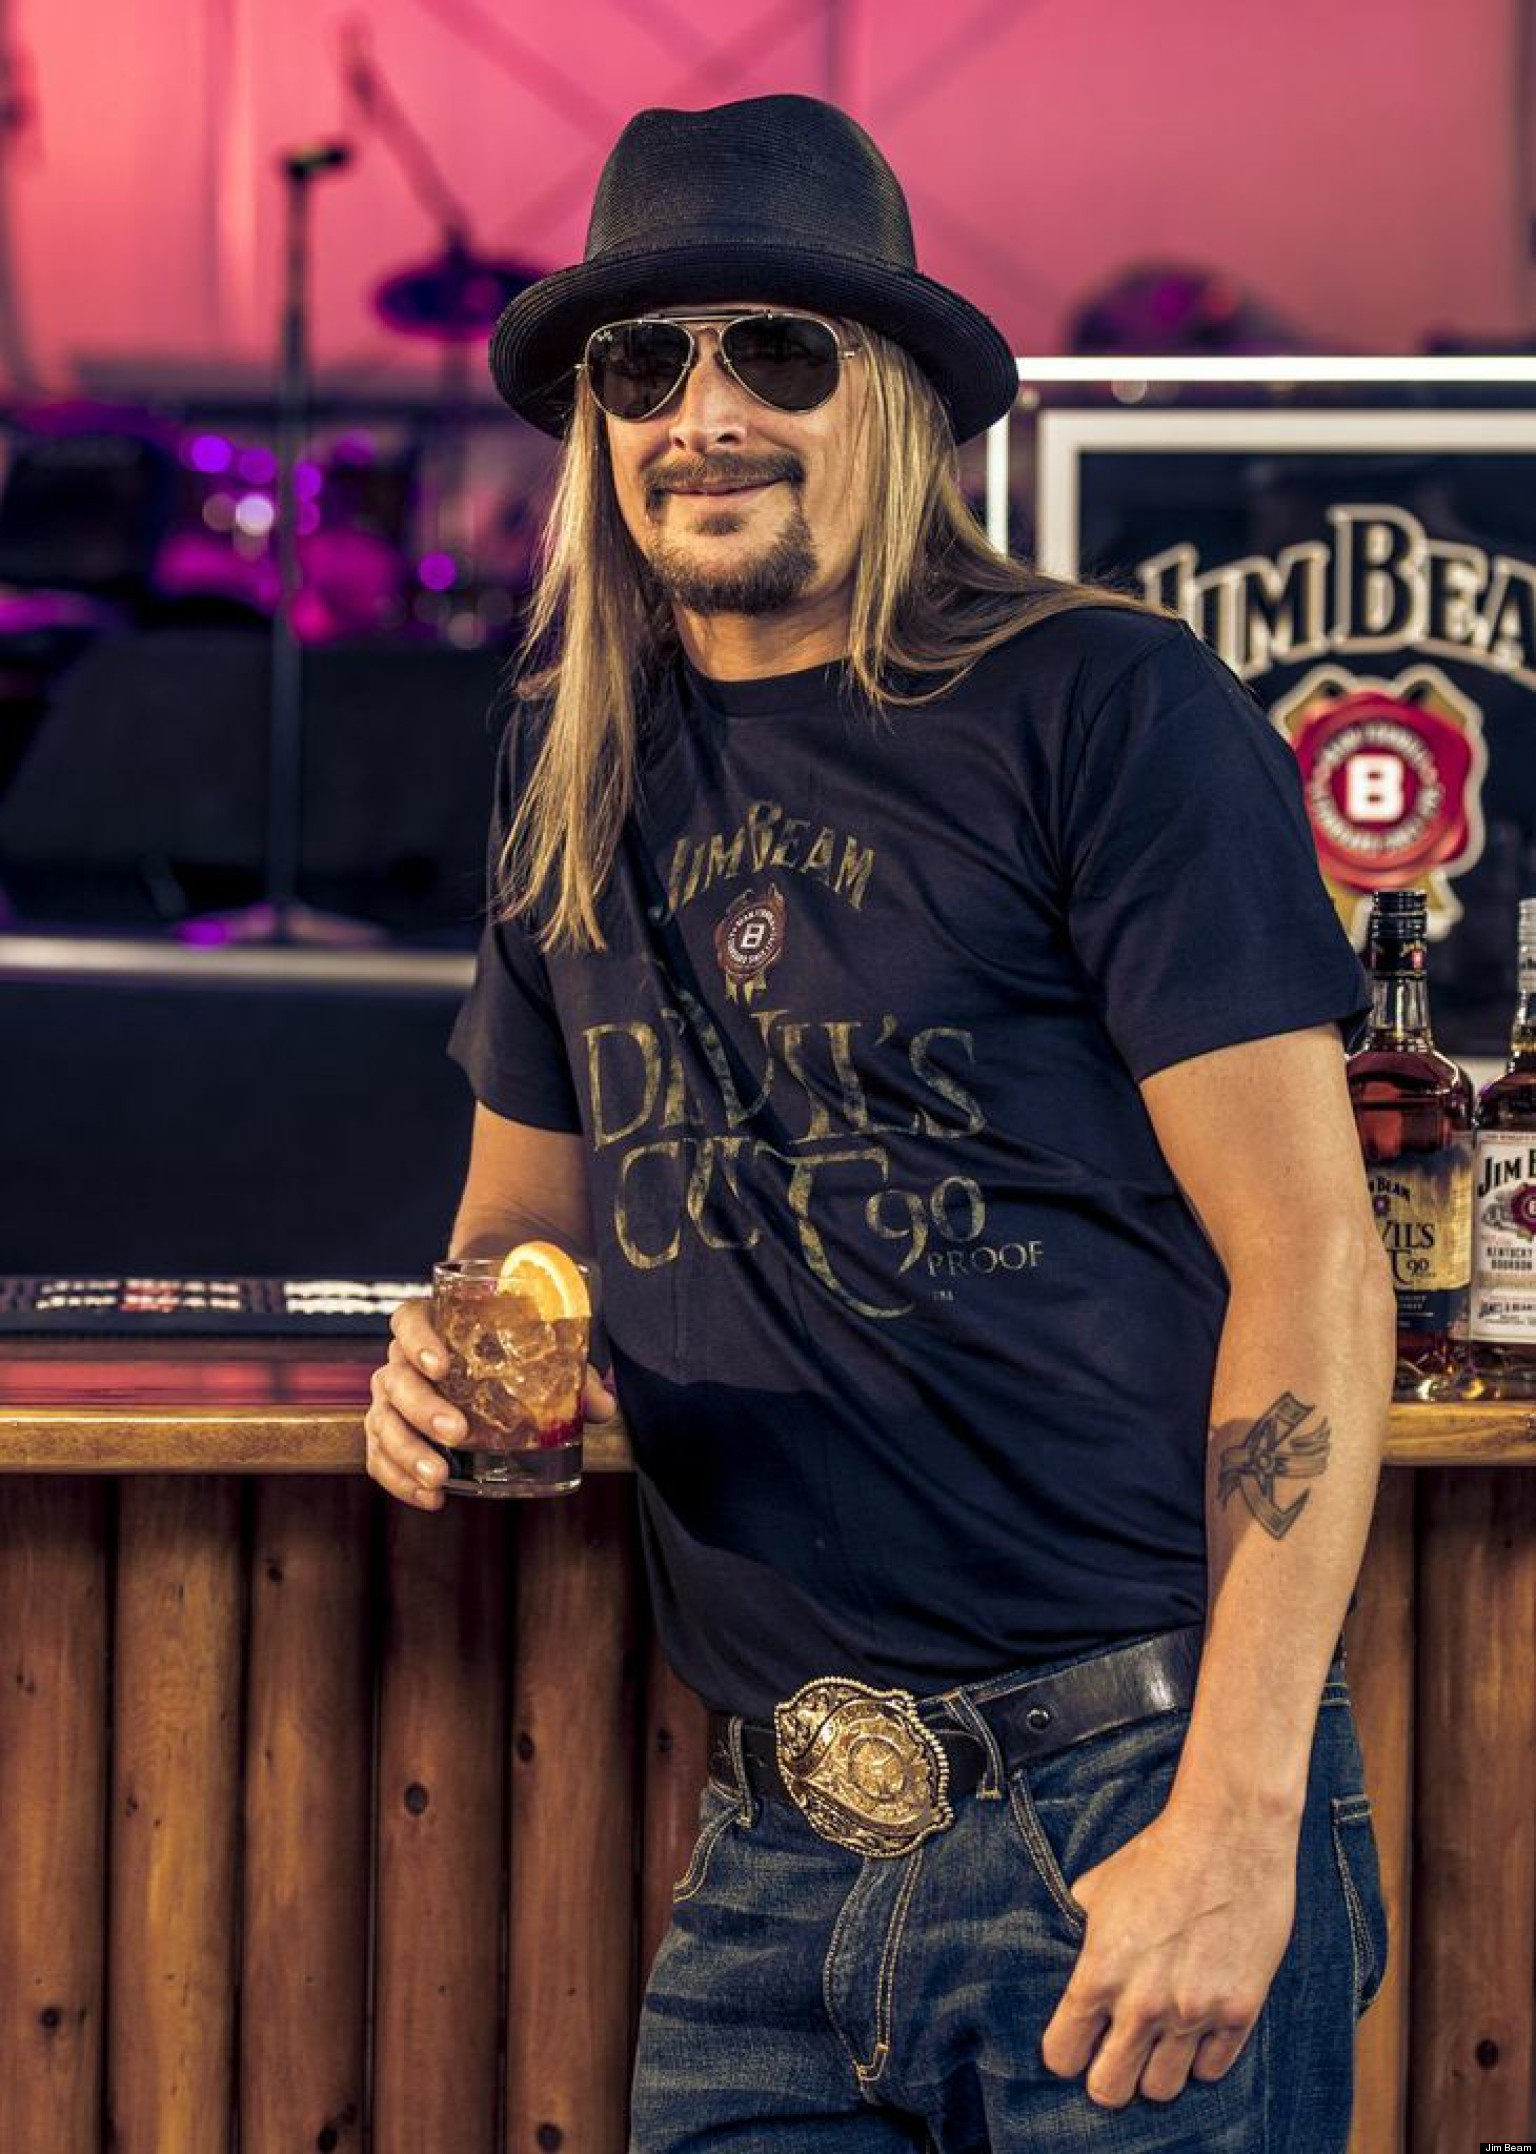 Kid Rock For Senate Shirt Free e91b87365d4